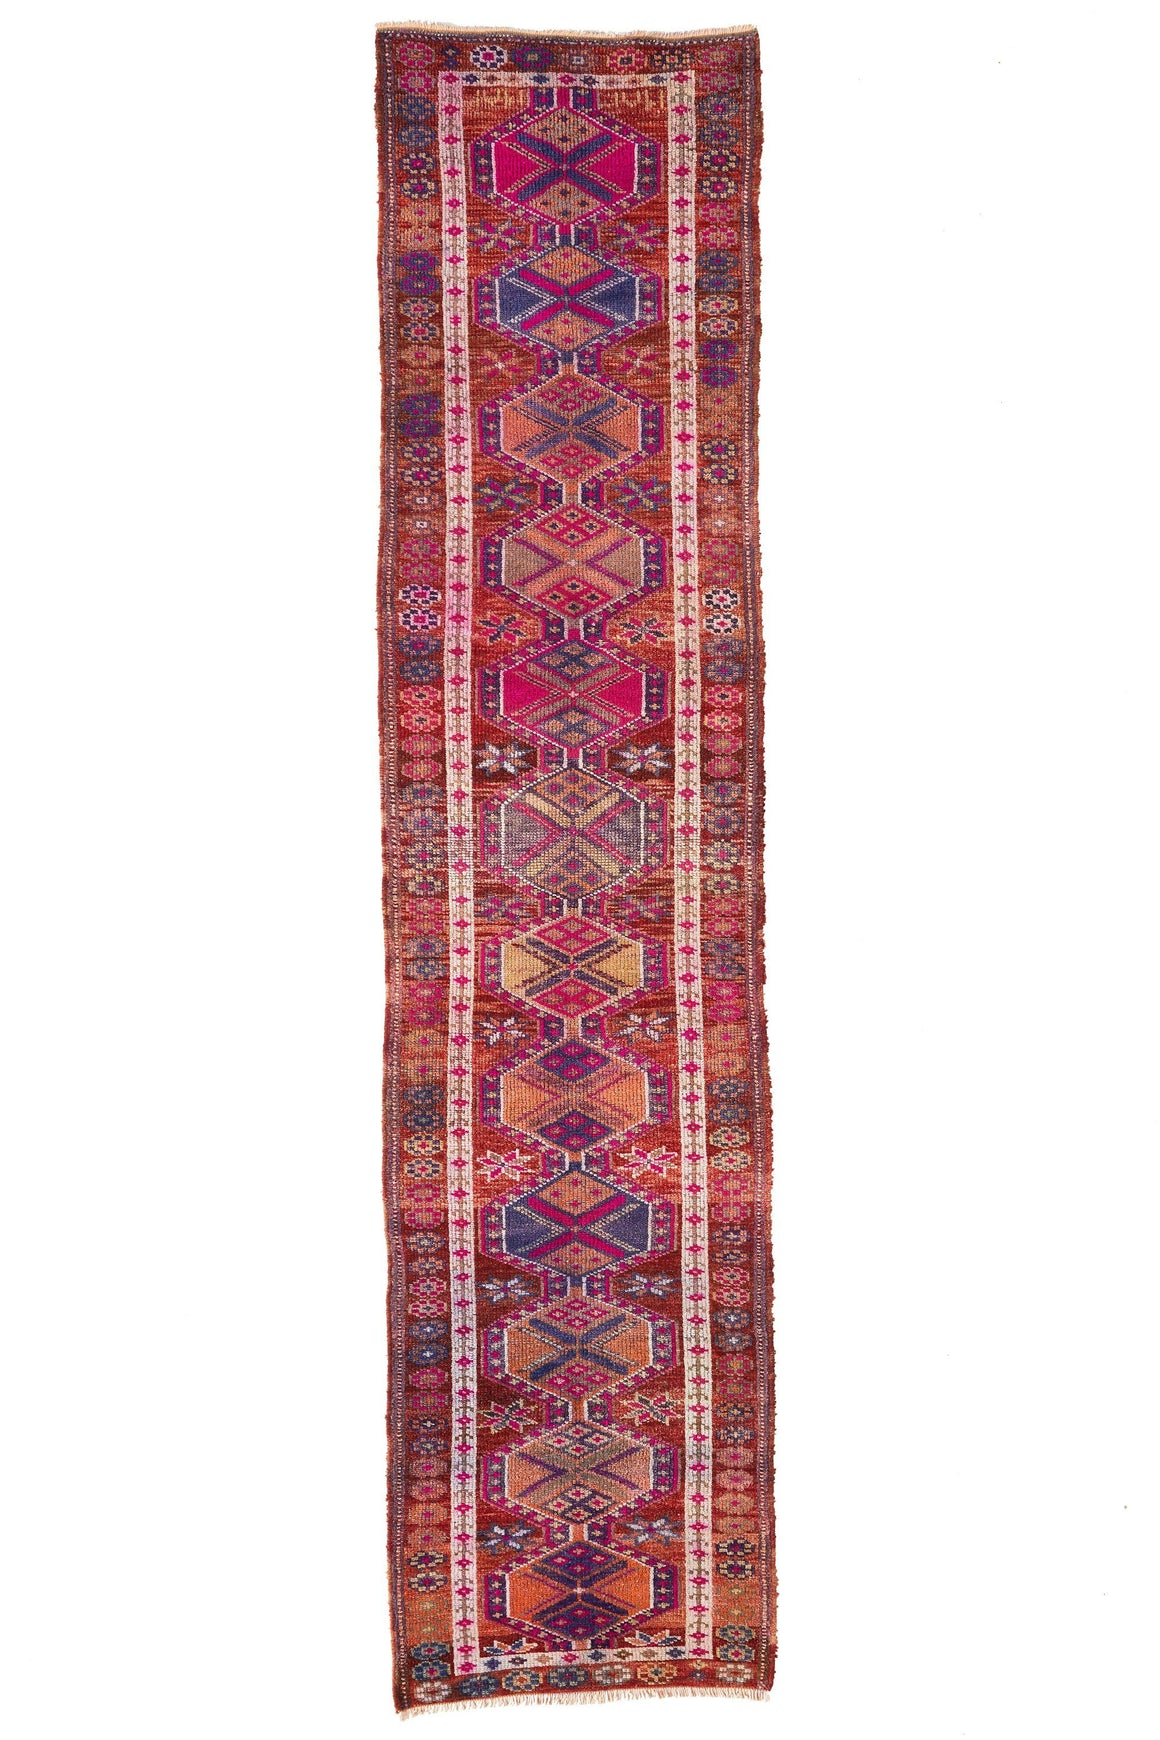 'Wildflower' Turkish Vintage Runner - 2'7'' x 11'3'' - Canary Lane - Curated Textiles